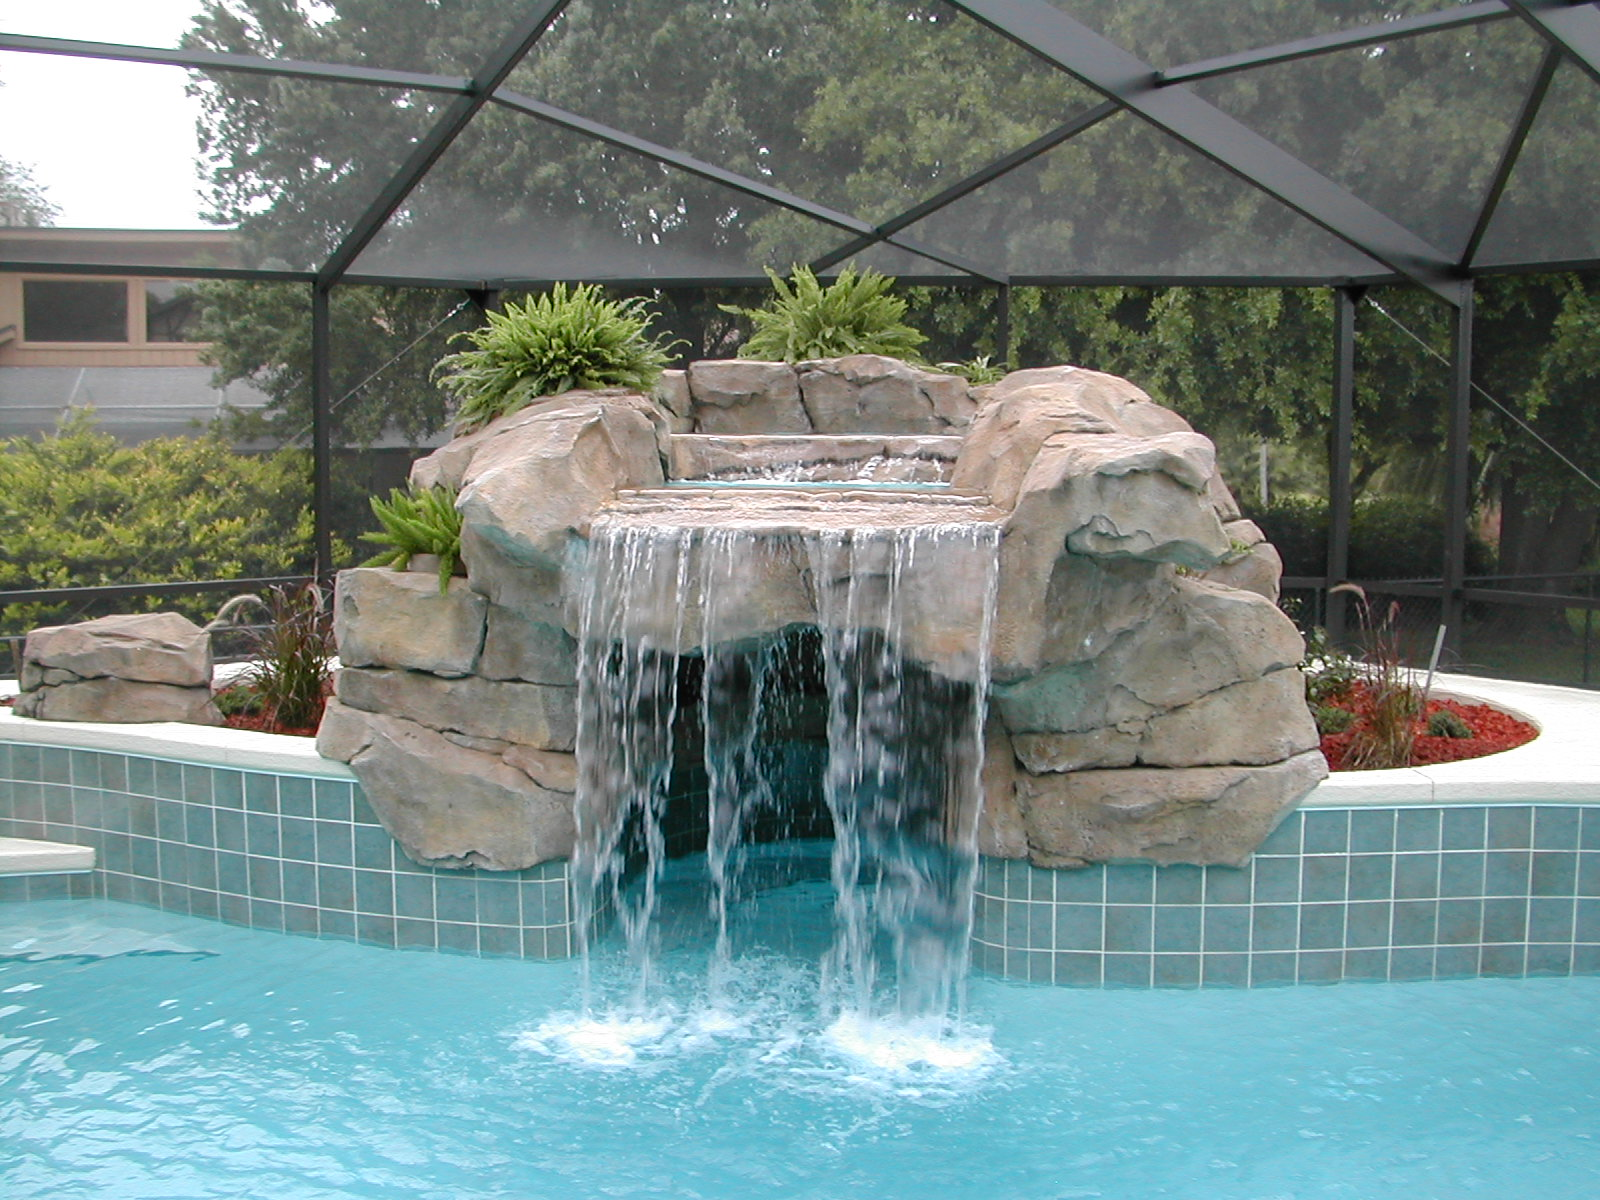 Water features omni pool builders design for Waterfall features